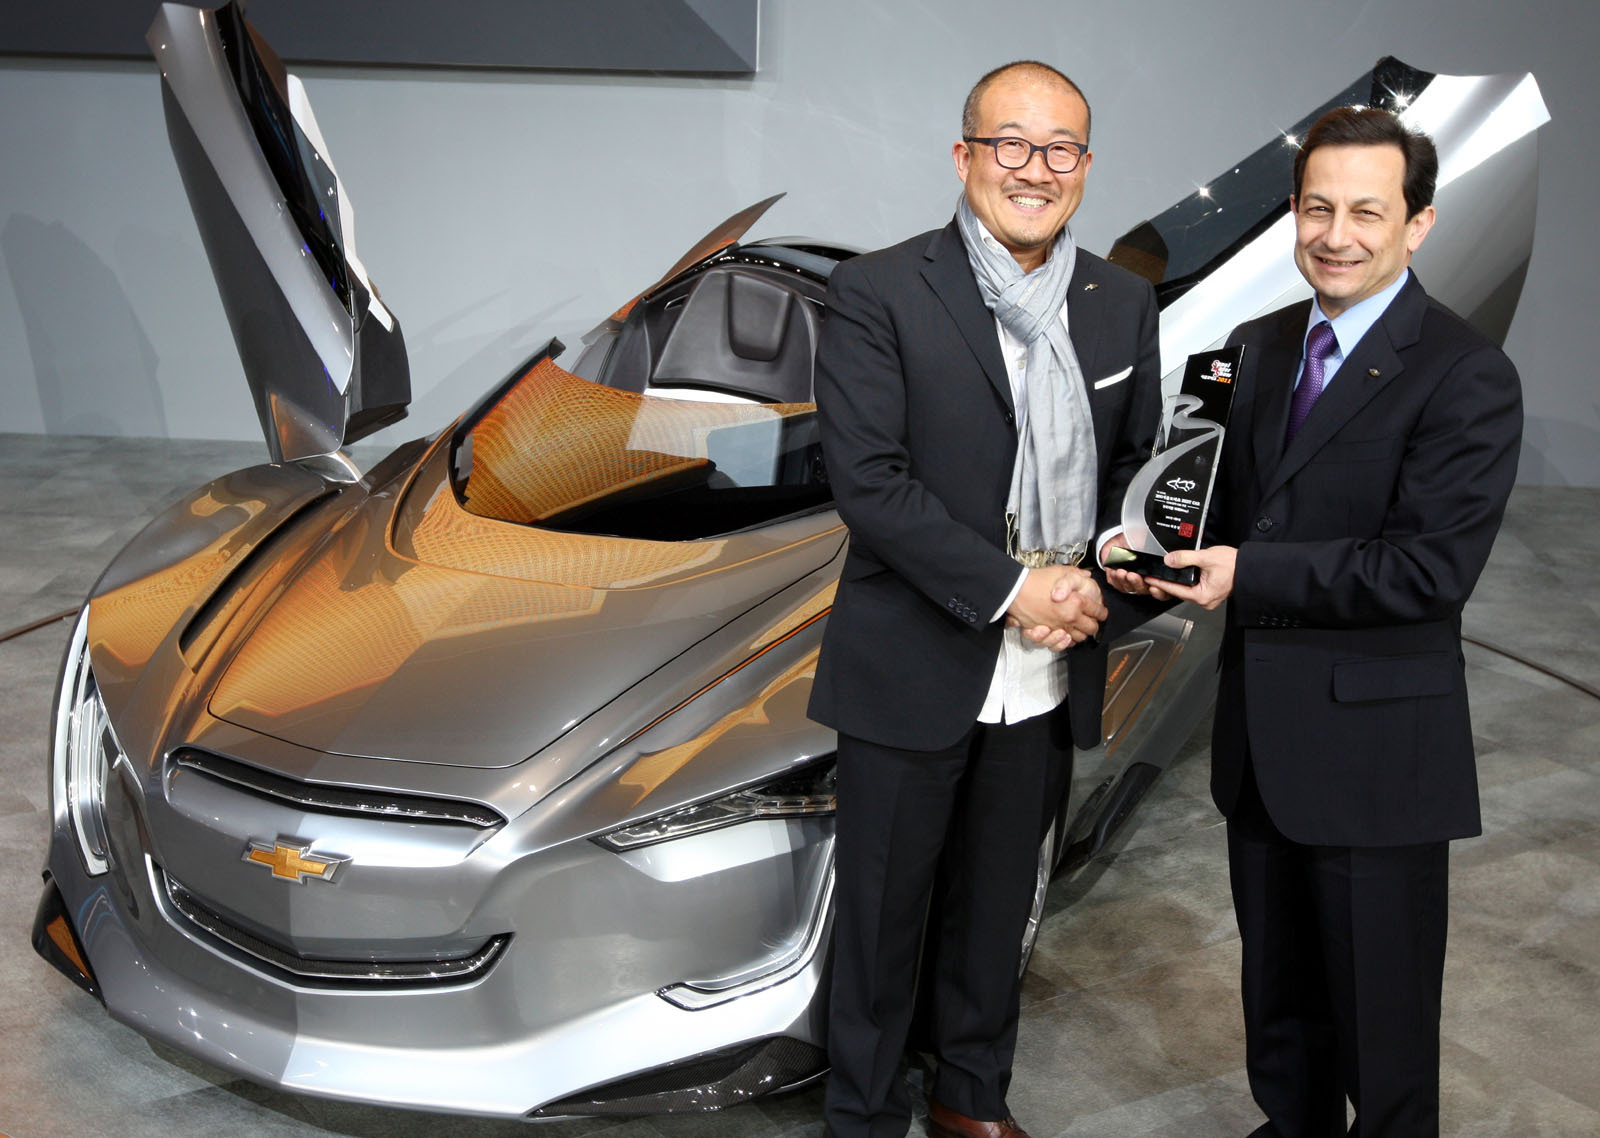 GM Director of Design Taewon Kim (left) and GM Korea President and CEO Mike Arcamone (right) holding the Best Concept Car award in front of the Mi-ray concept supercar at the 2011 Seoul Motor Show.